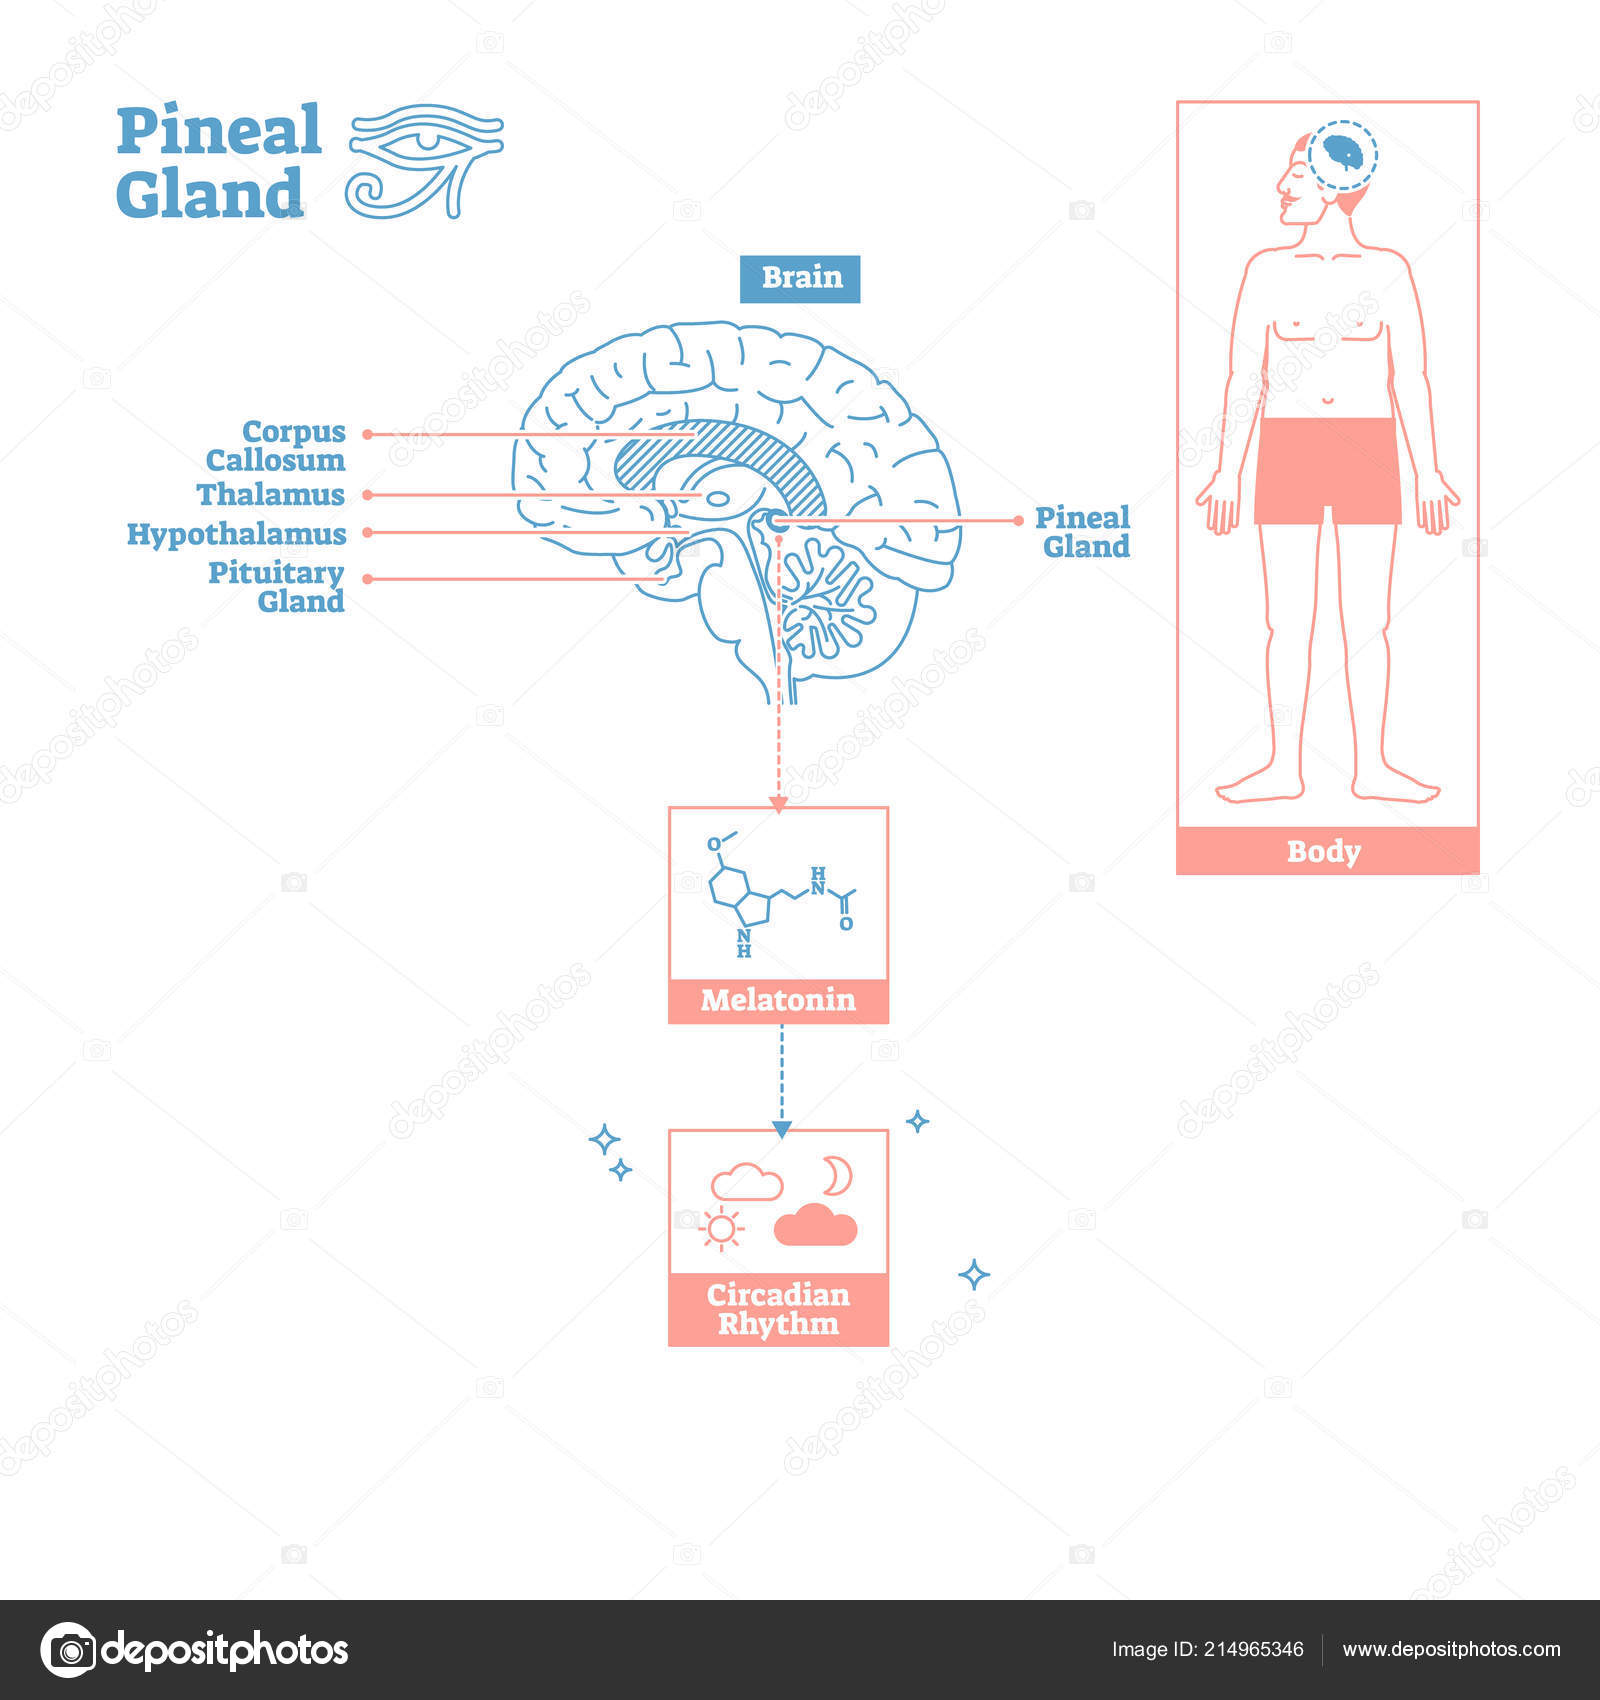 Pineal Gland Of Endocrine Systemdical Science Vector Illustration